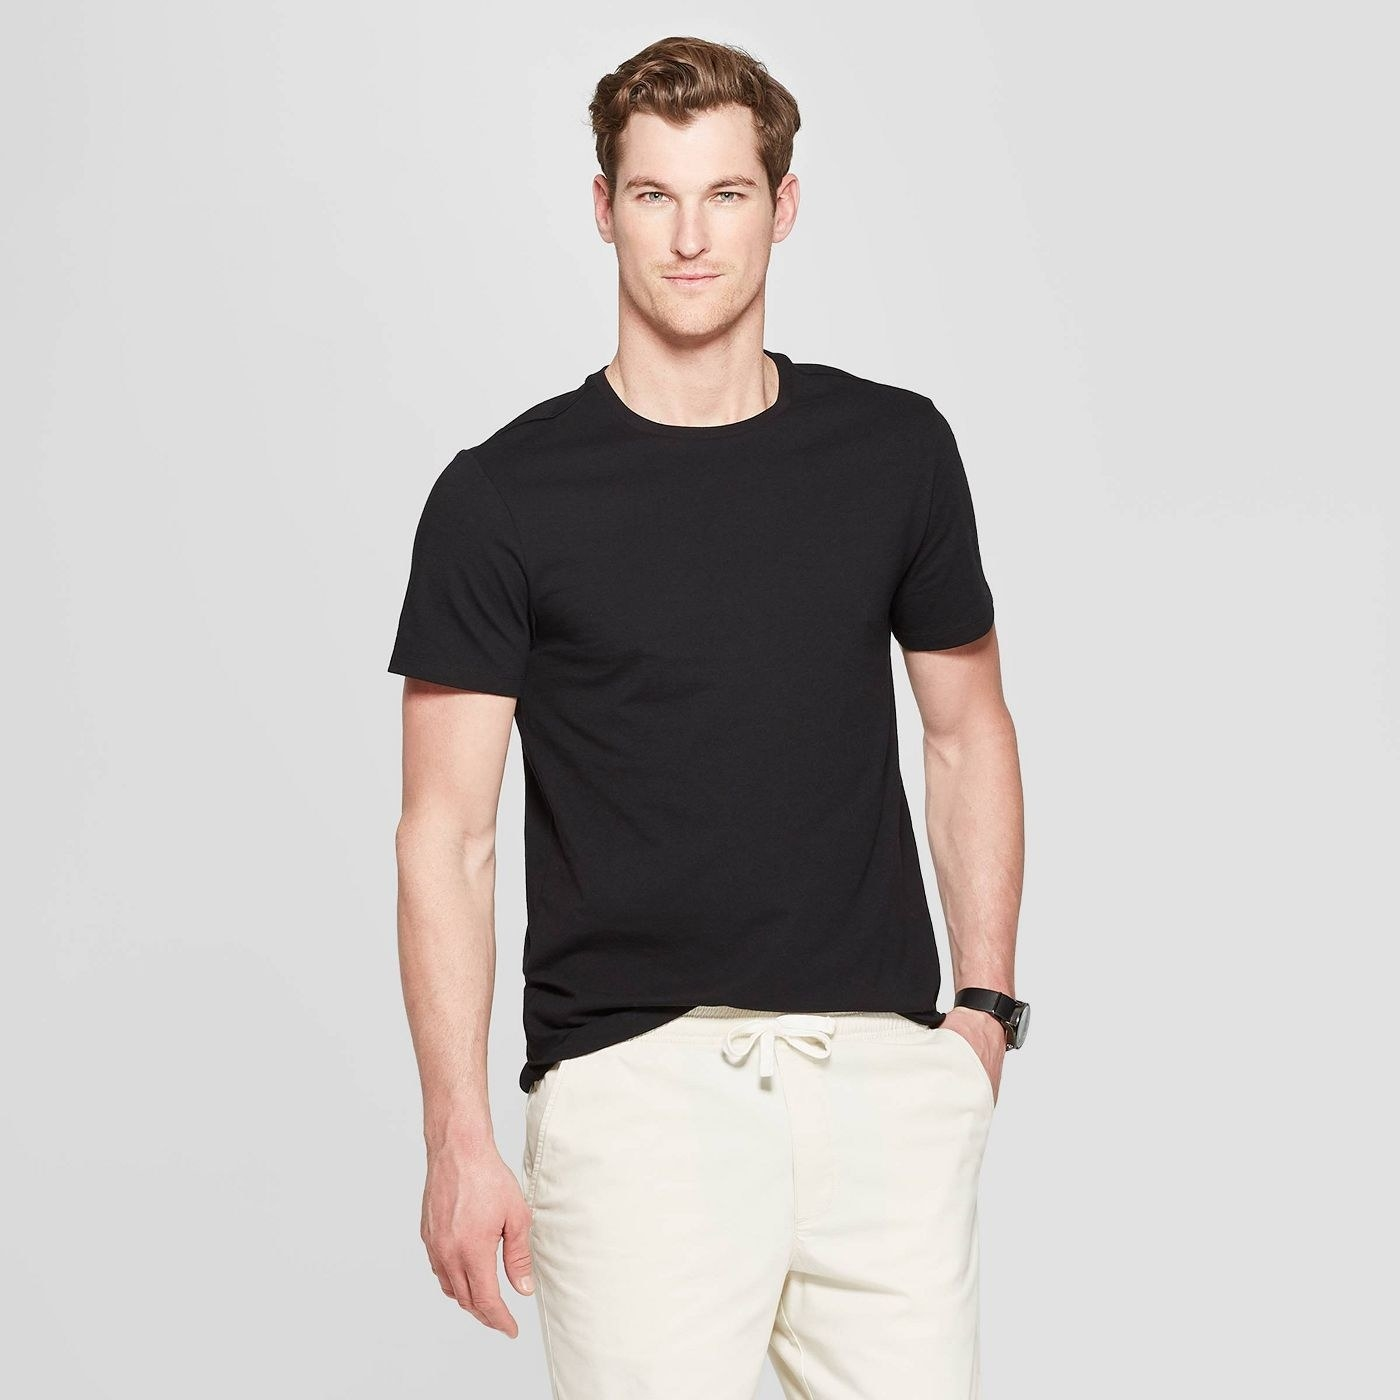 A person wearing the black t-shirt and white pants